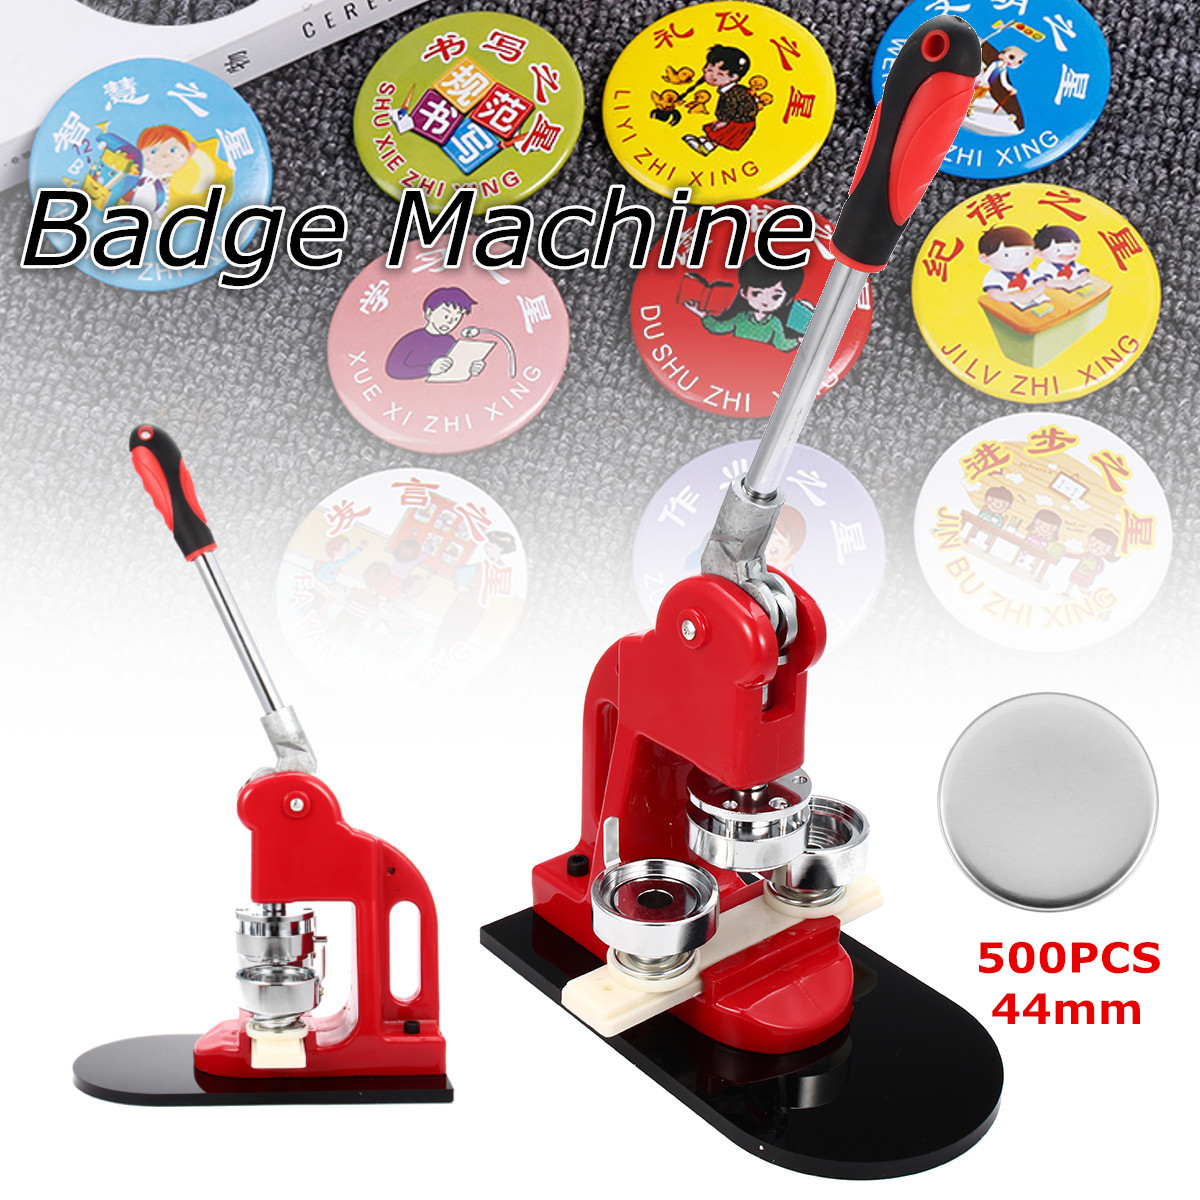 Button Maker Badge Making Machine Button Maker Machine 44MM Aluminum Round Mold with 500pcs Badges